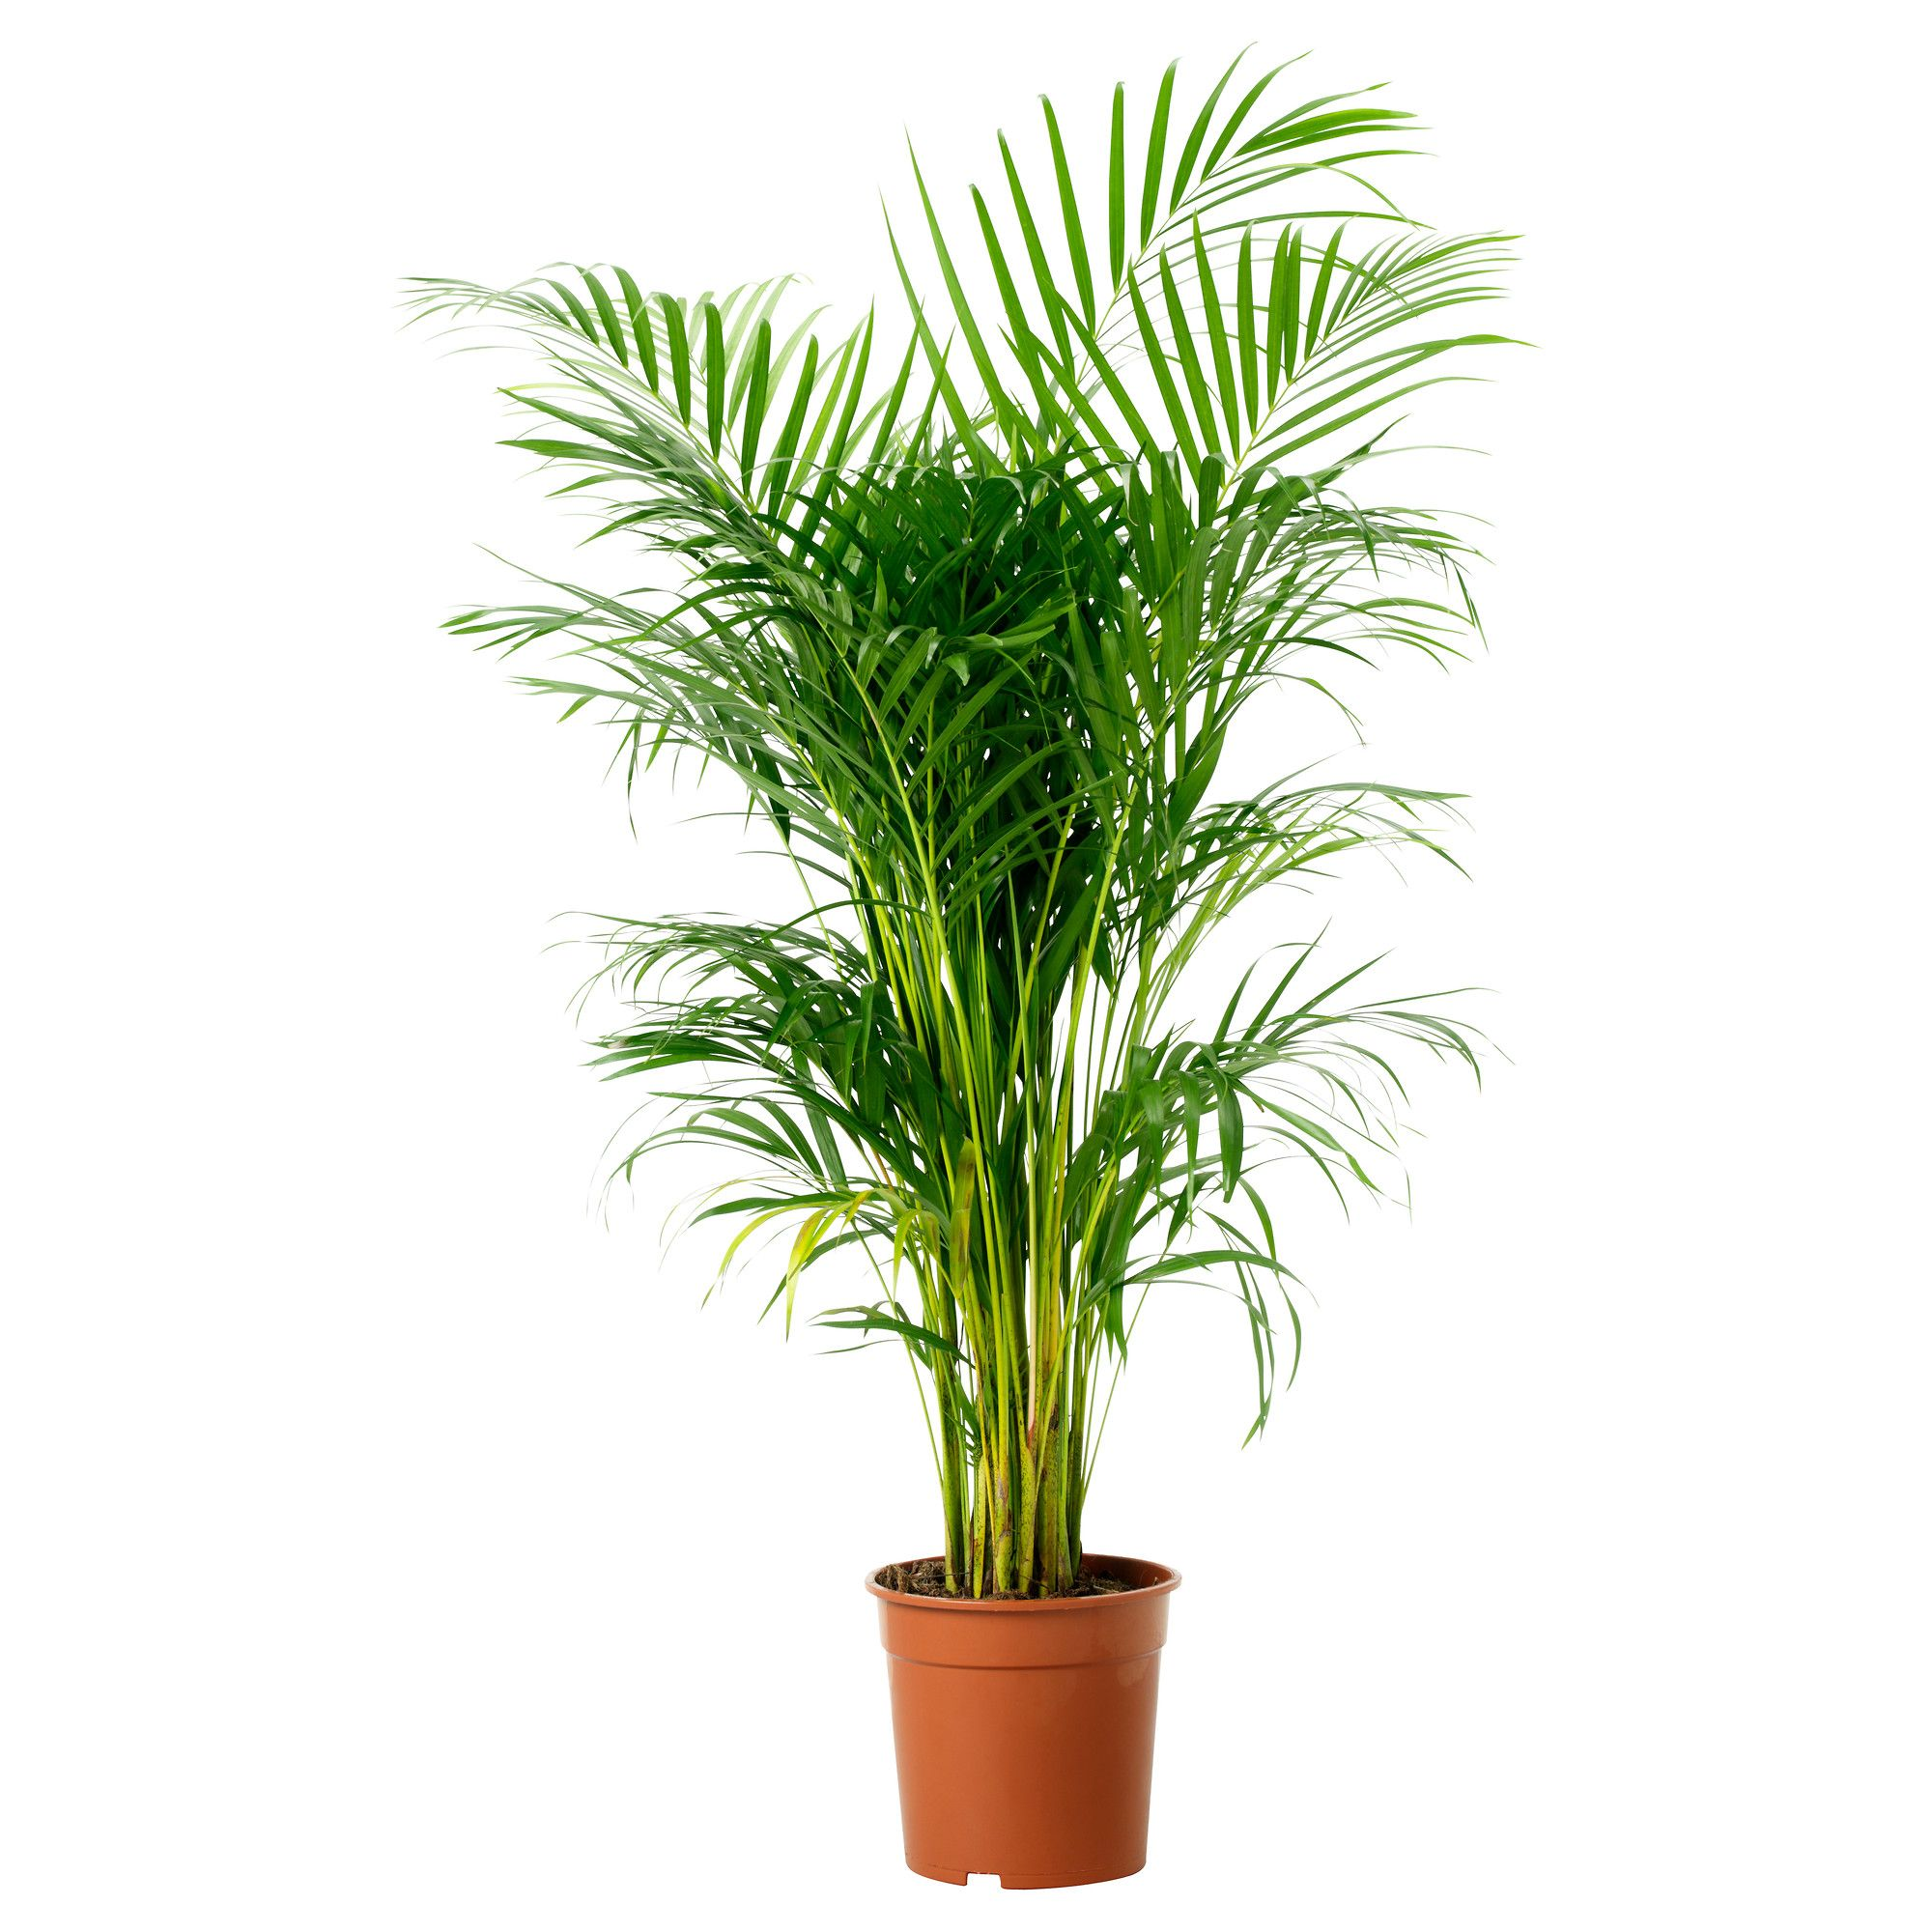 chrysalidocarpus lutescens potted plant ikea - Tall Potted Plants